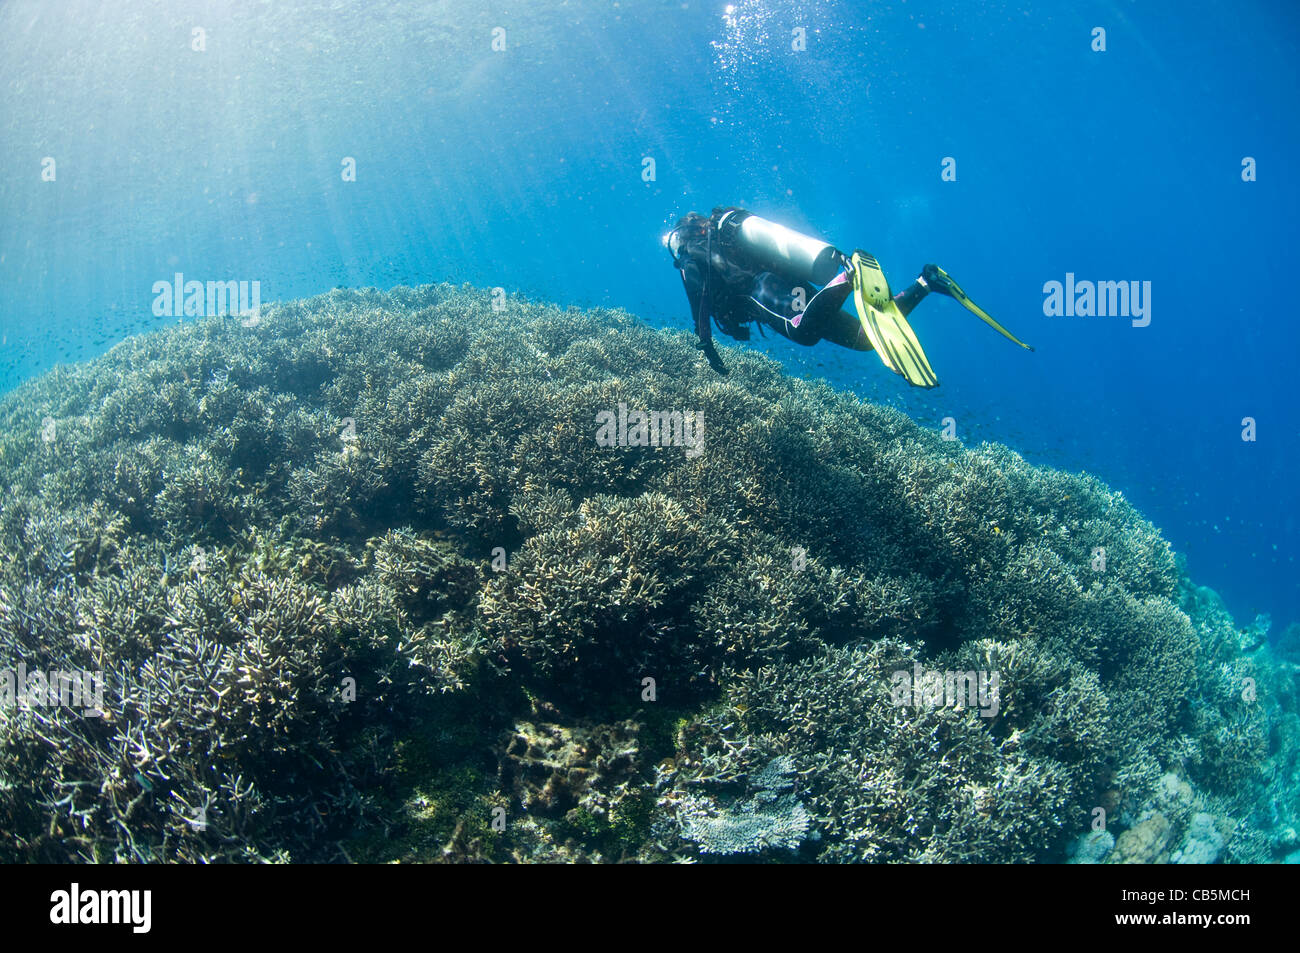 A diver inspects a hard coral garden, Lembeh Strait, North Sulawesi, Indonesia - Stock Image